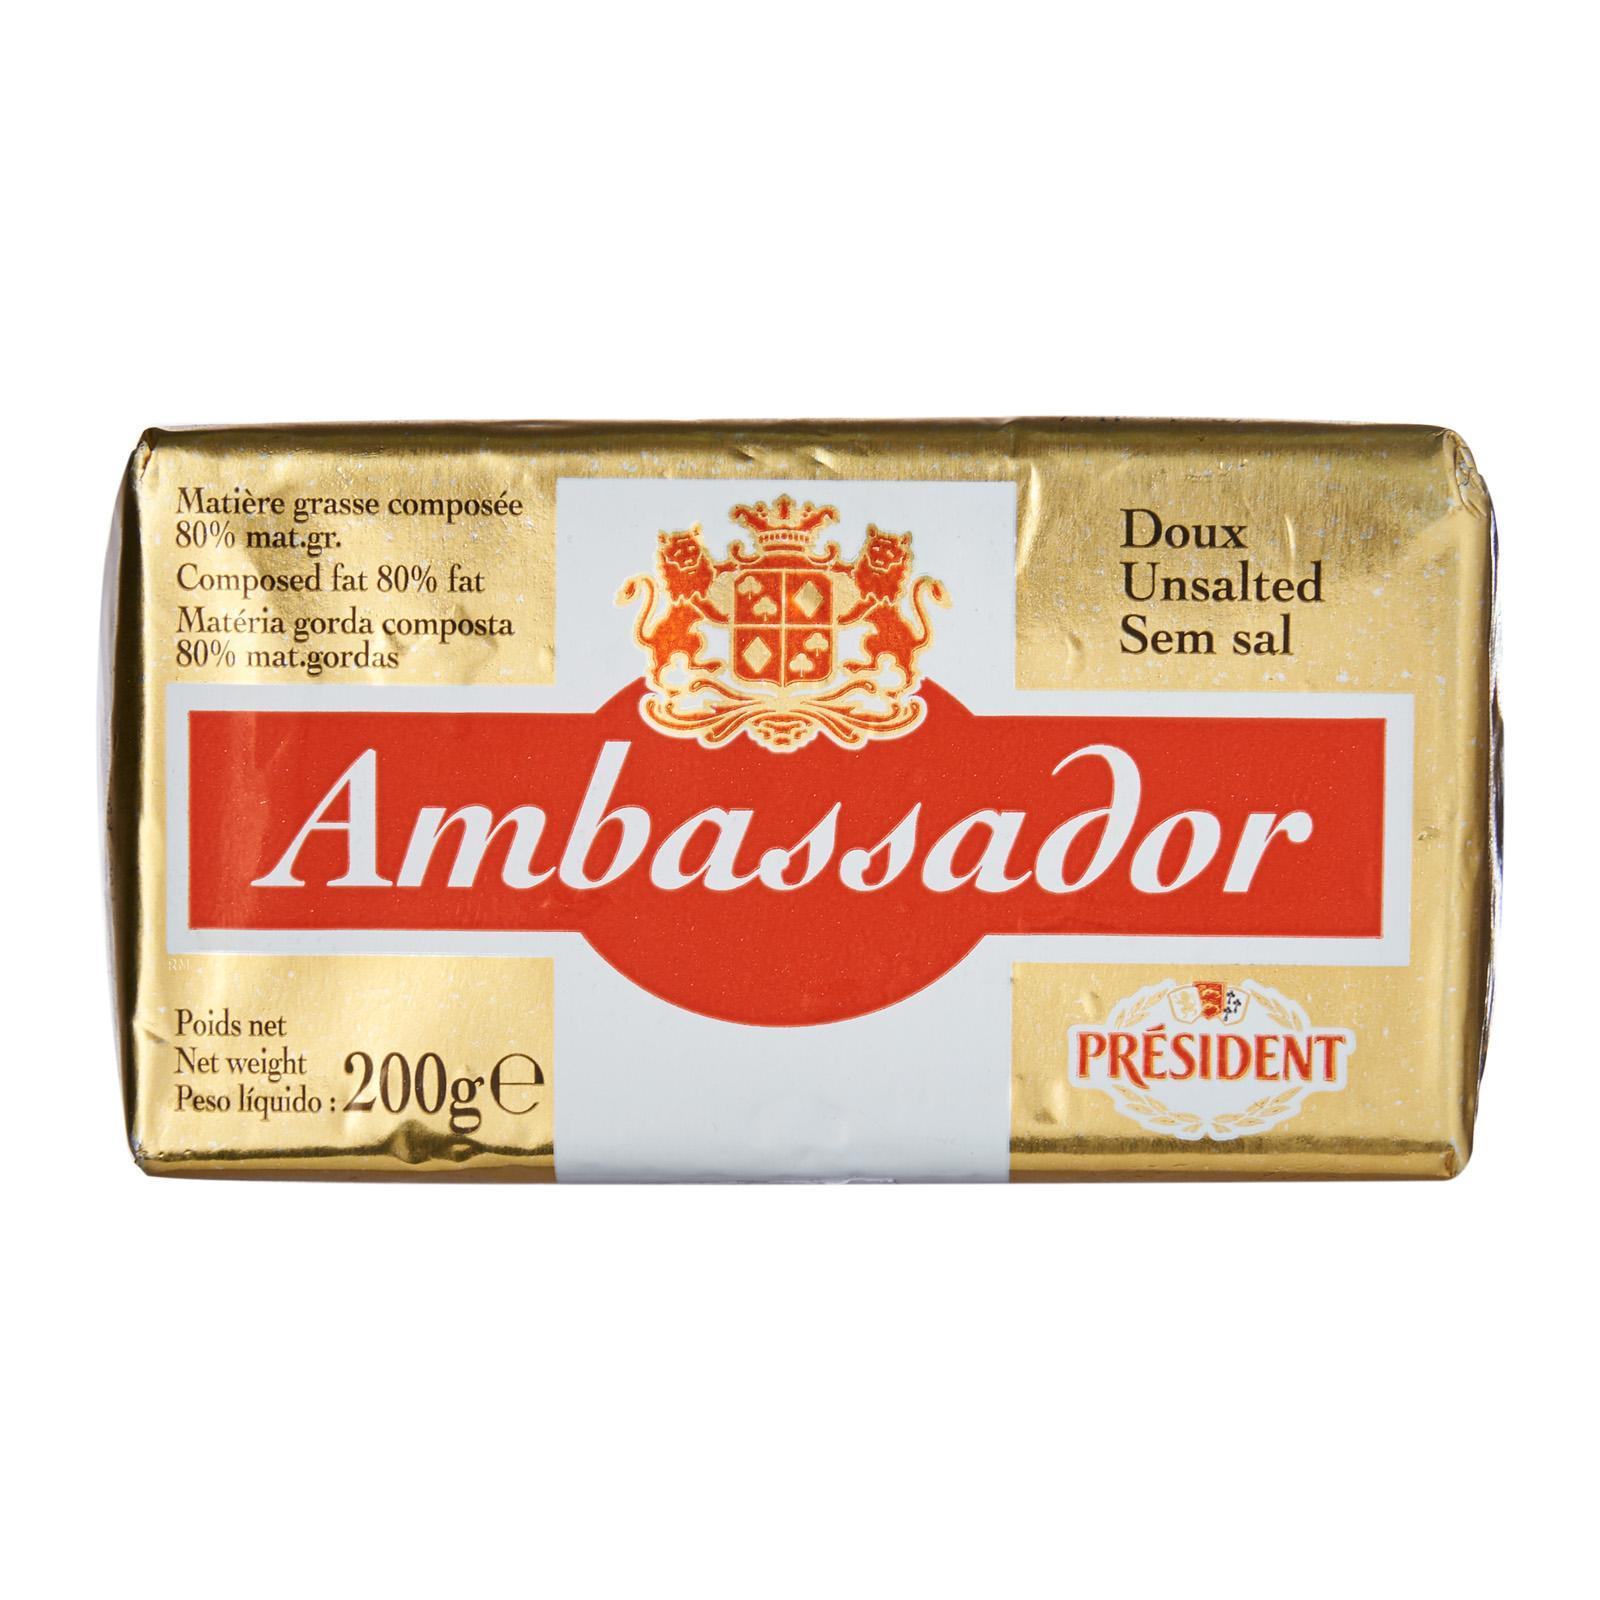 AMBASSADOR Specialty Dairy Block - Unsalted